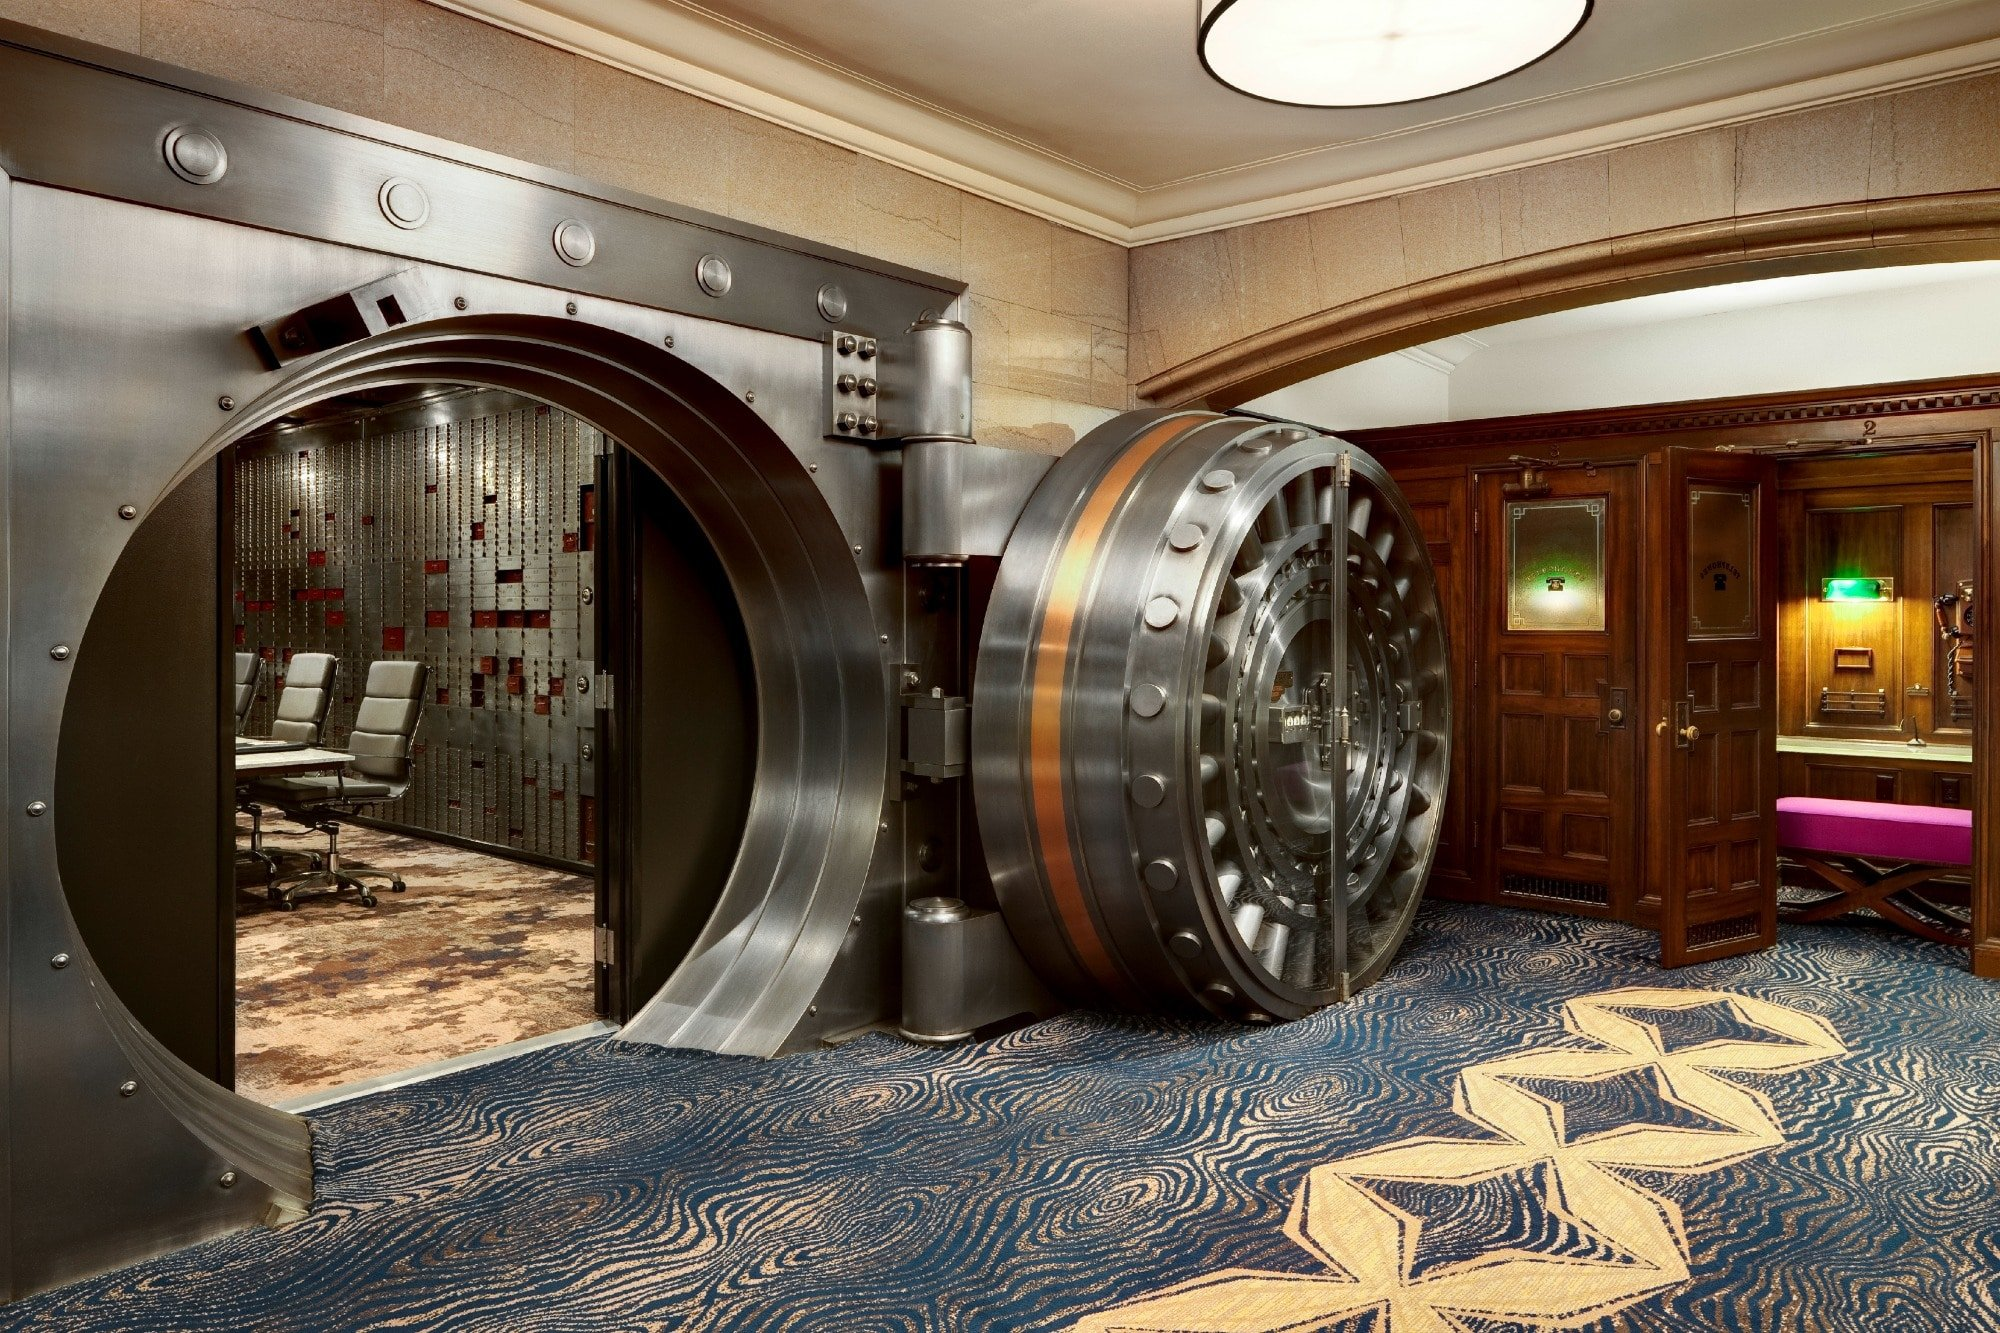 The old bank vault turned conference room at Courtyard by Marriott San Diego Downtown.